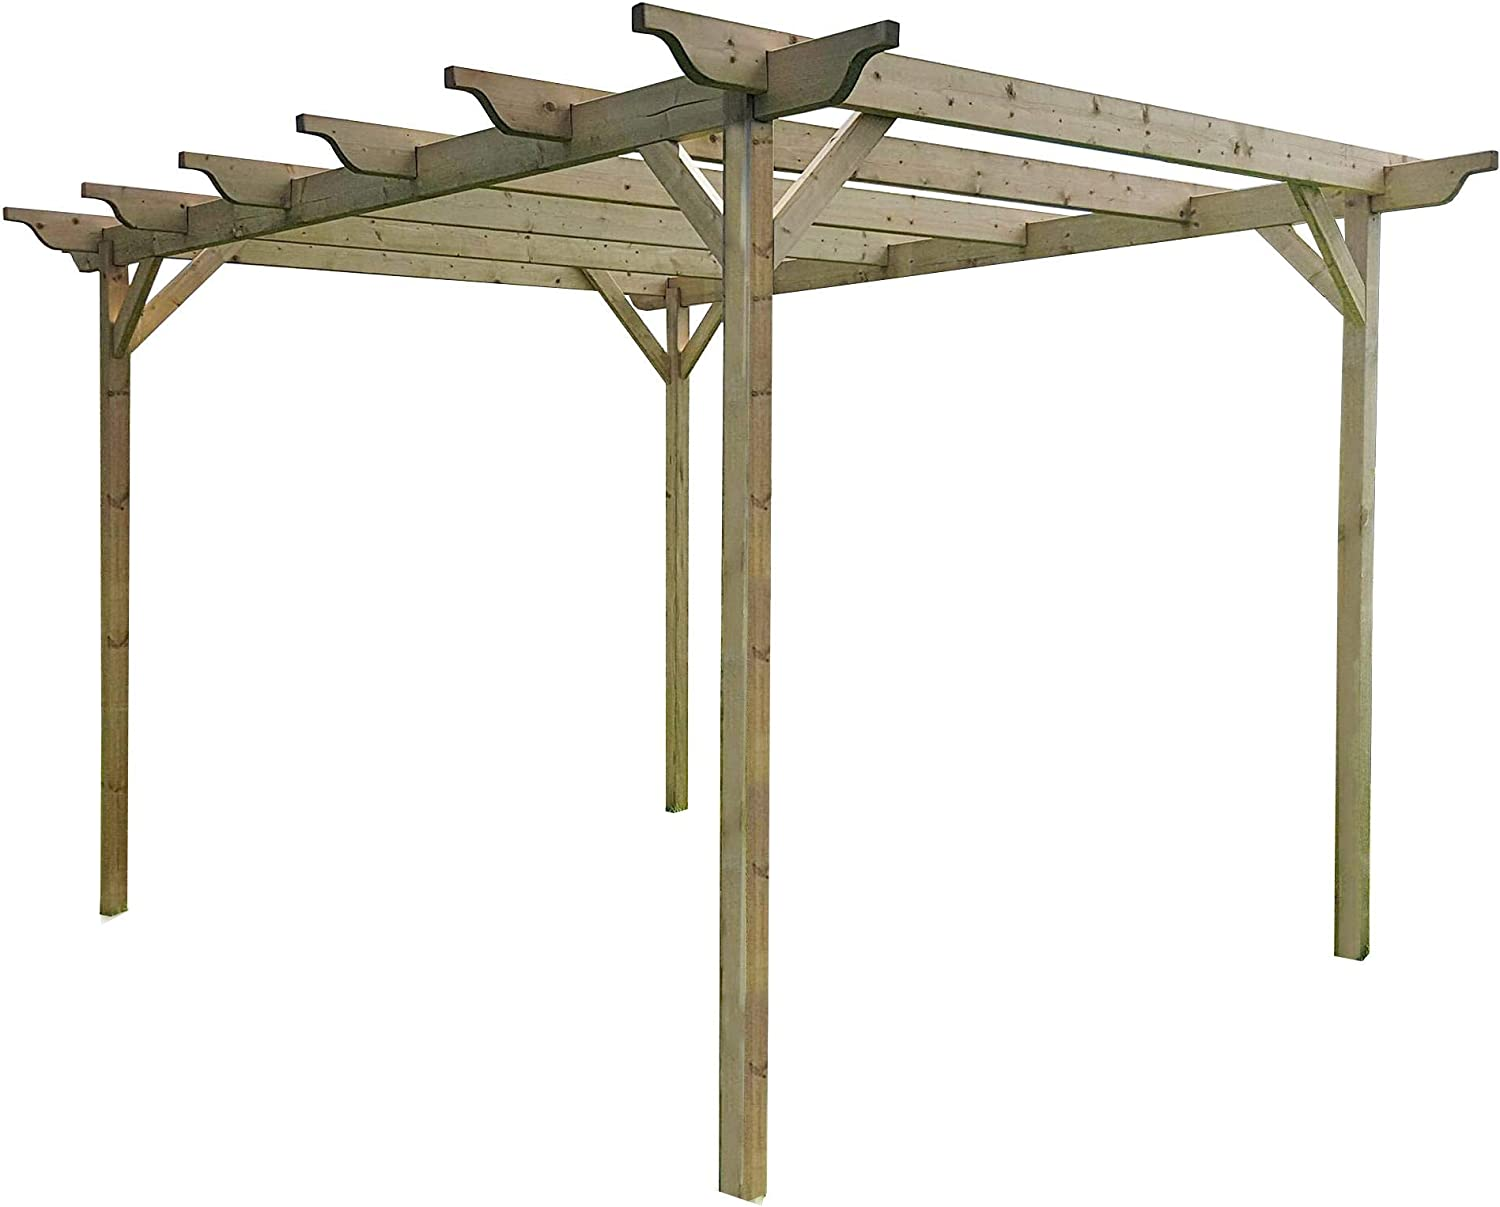 Sculpted Wooden Garden Pergola Kit Exclusive Pergola Range Largest On Amazon Light Green Or Rustic Brown Finish 3m X 3 6m 4 Posts Light Green Natural Amazon Co Uk Garden Outdoors